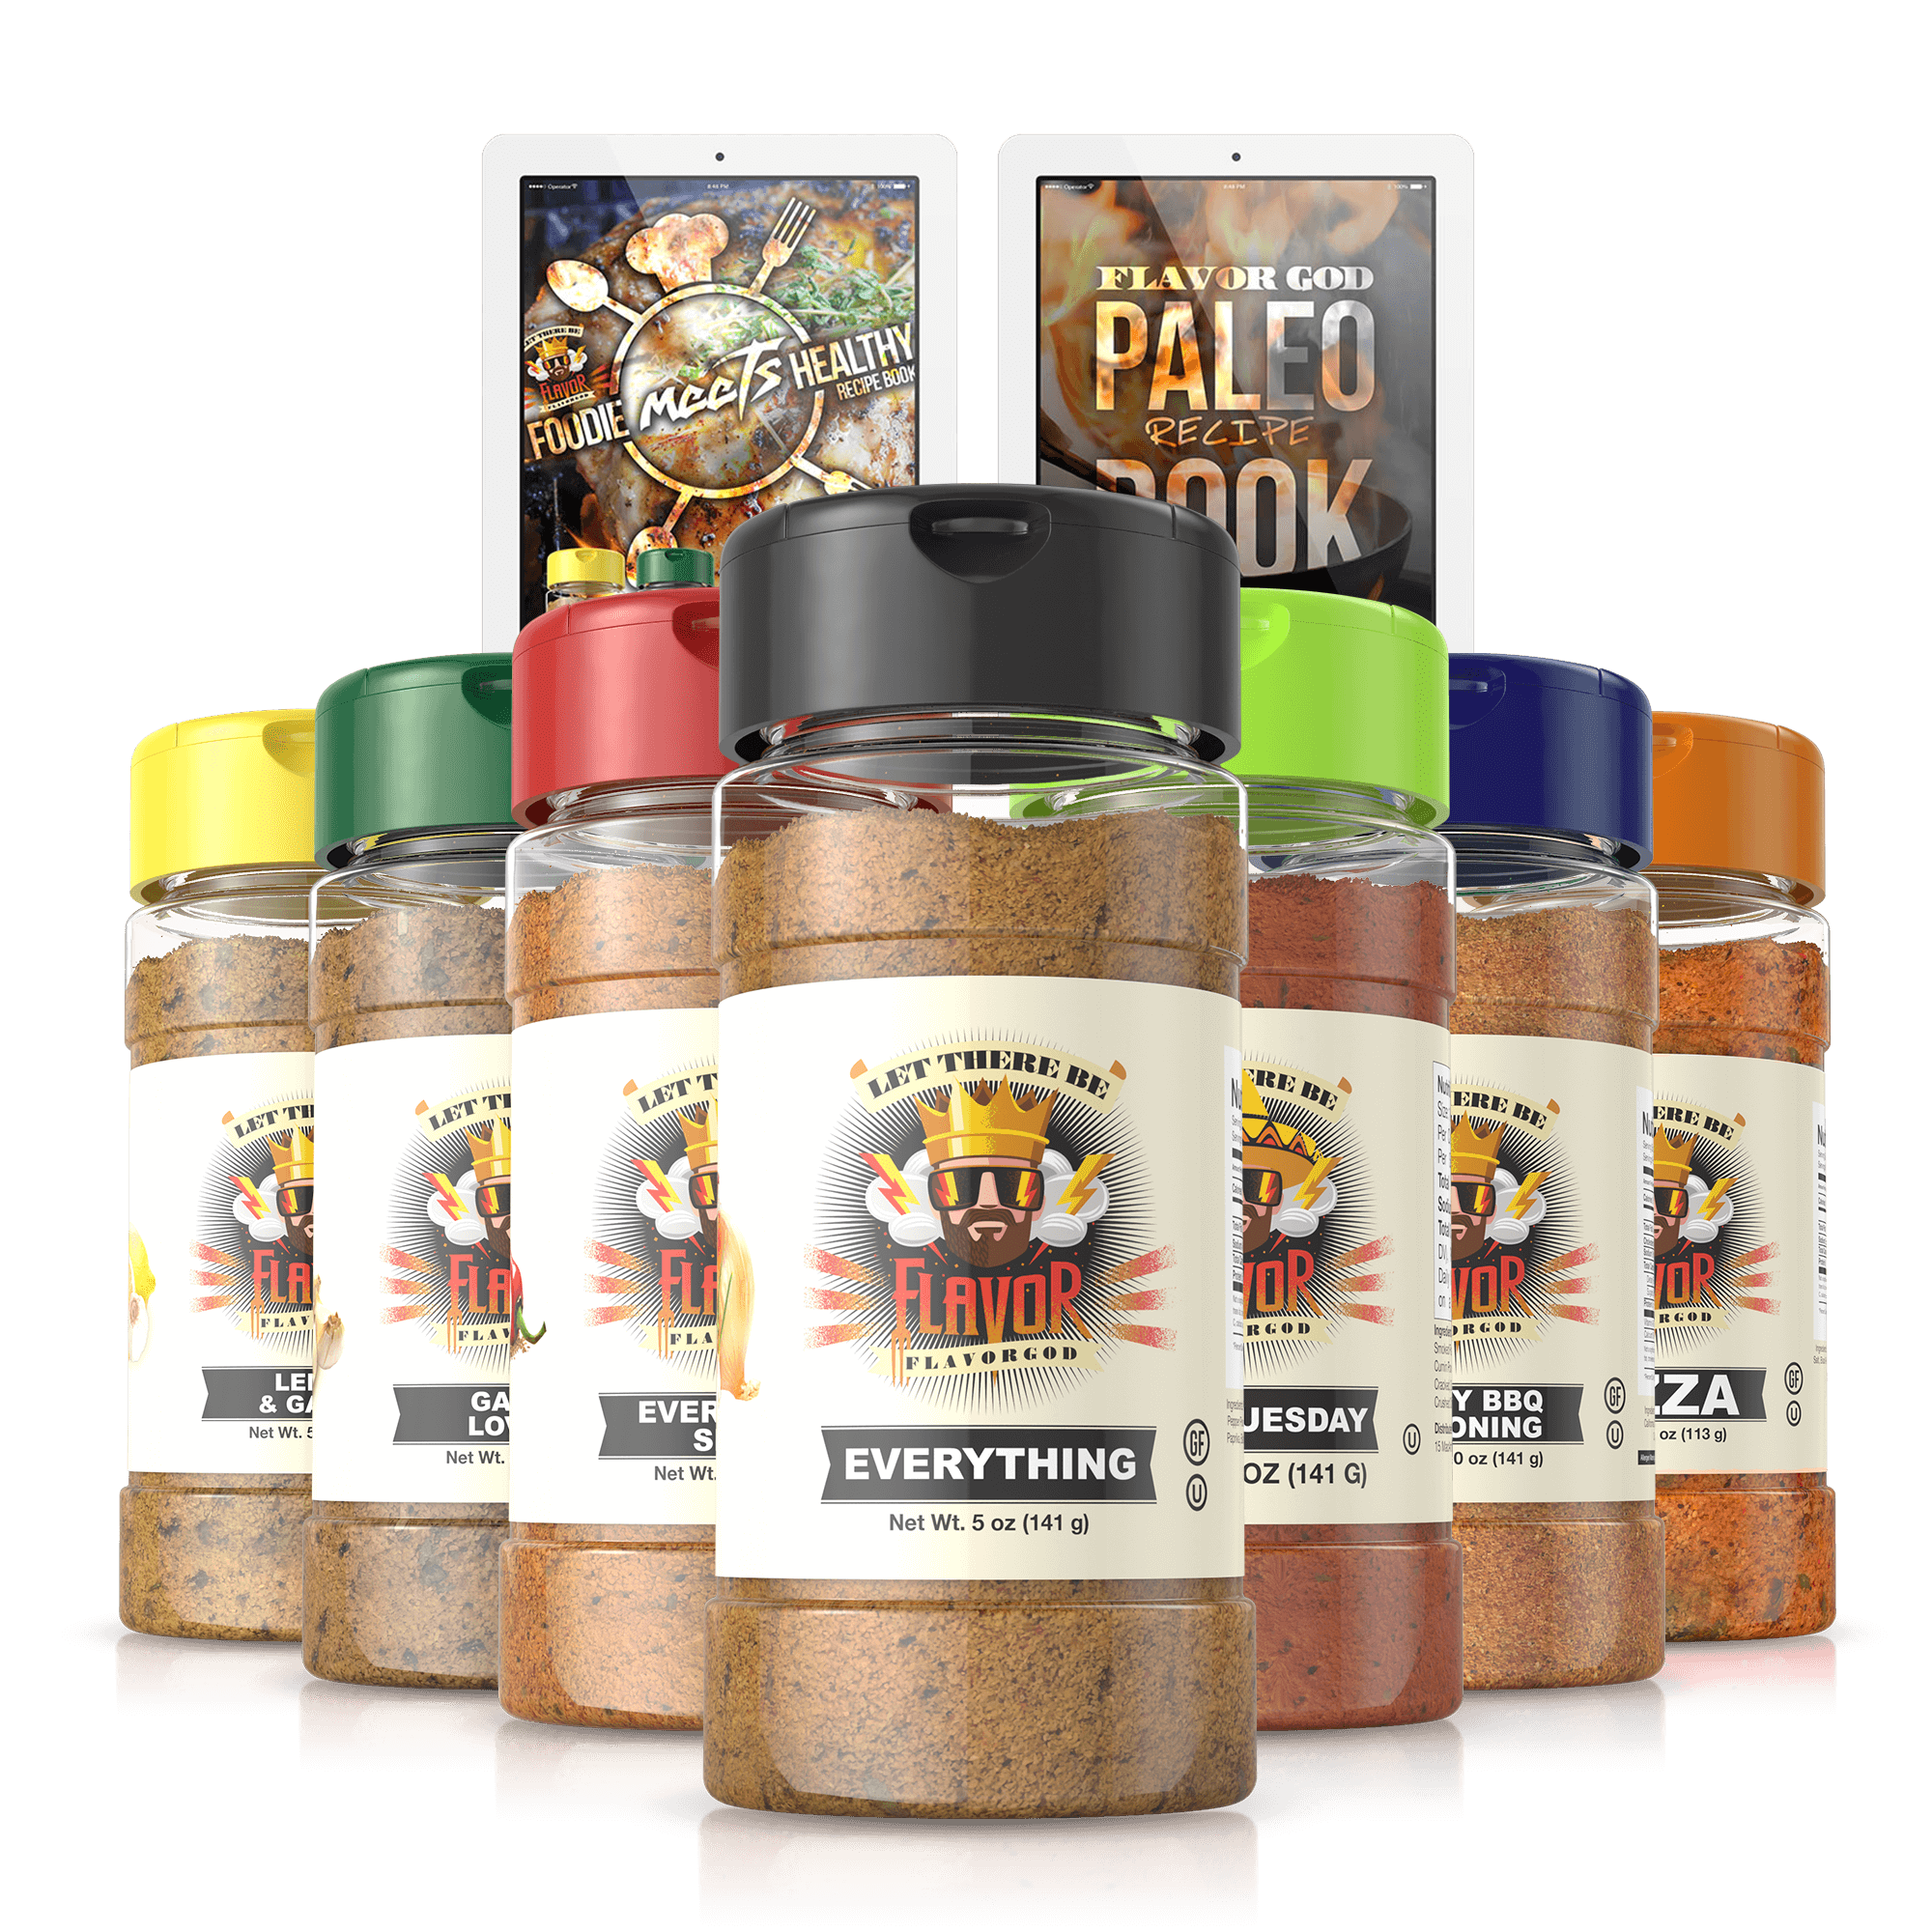 FLAVOR GOD | Home of FRESH & Healthy Seasonings